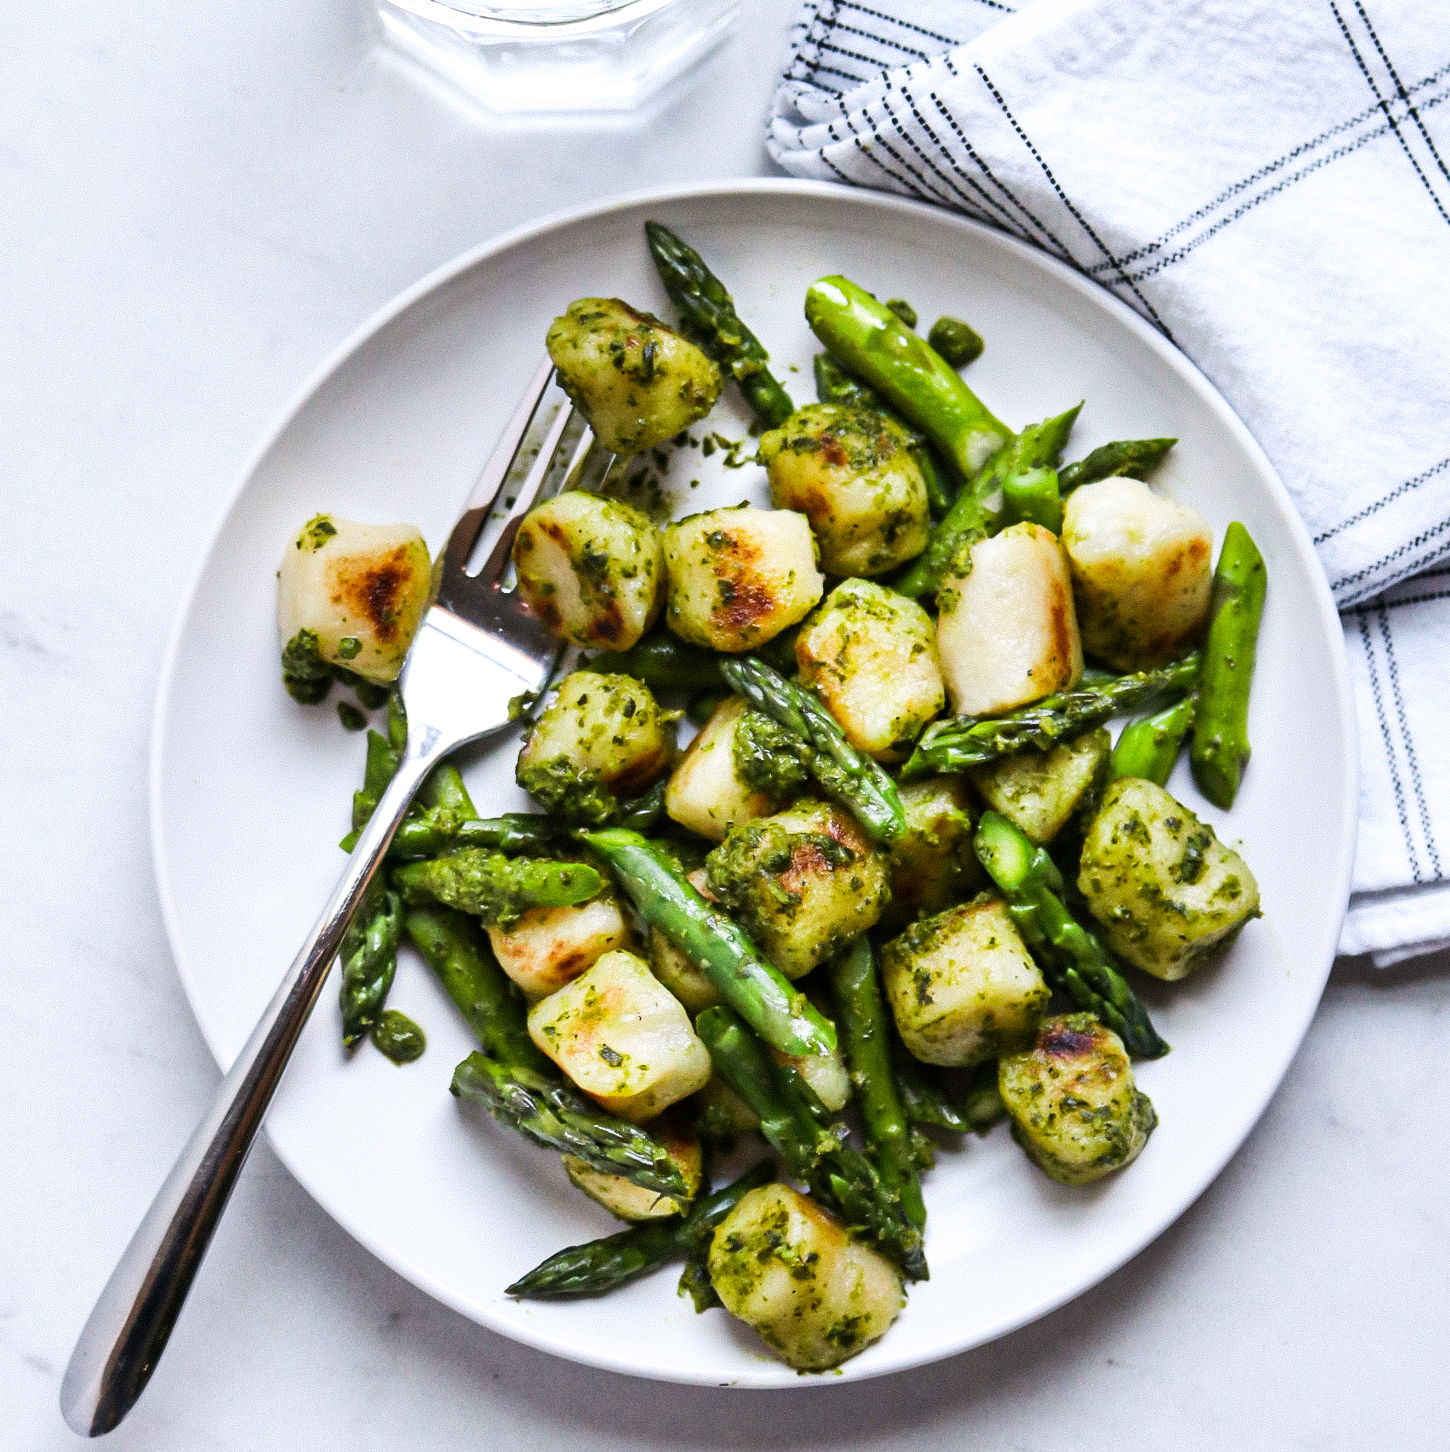 https://www.eatingwell.com/article/7882943/3-ingredient-mediterranean-dinners-you-can-make-from-the-pantry/3_ing-med-dinners_cauli-gnocchi-with-asparagus-and-pesto/